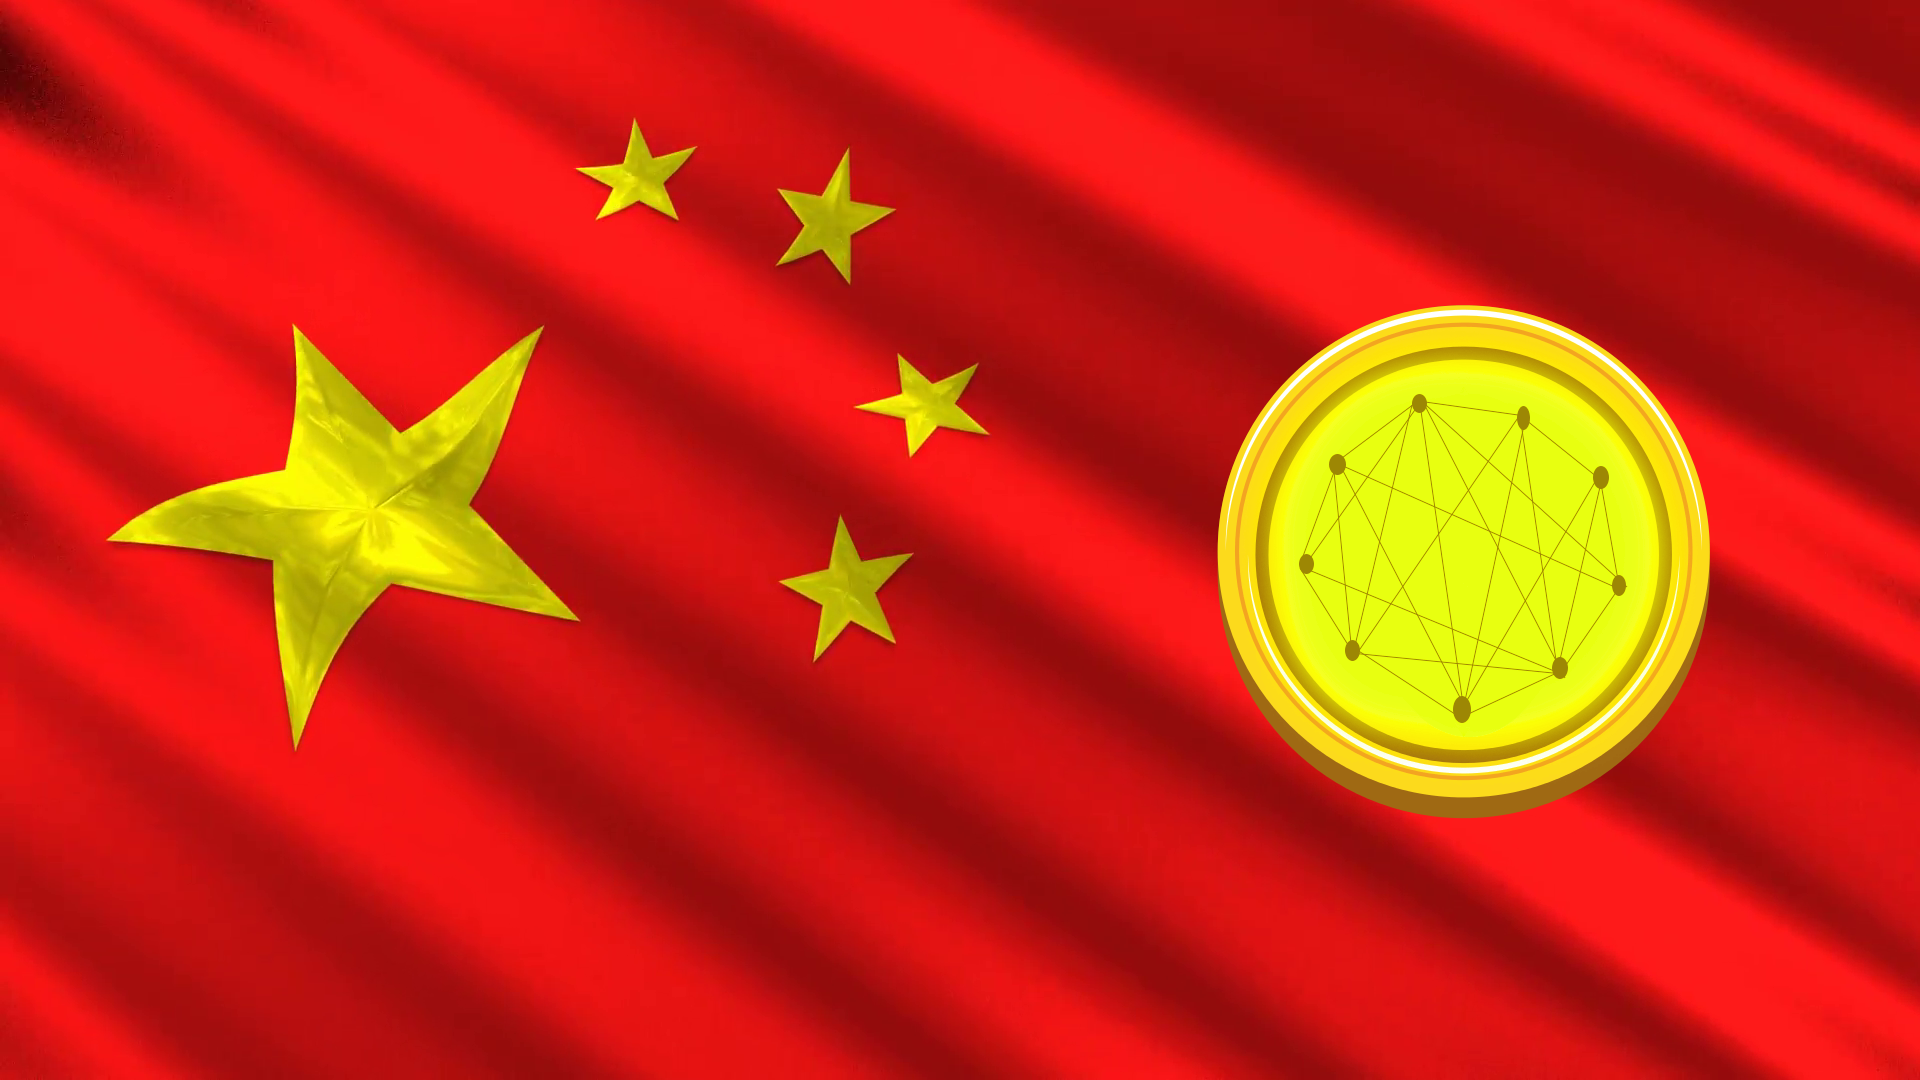 chinese flag animation 3d stars 4jf0ovgh  F0000